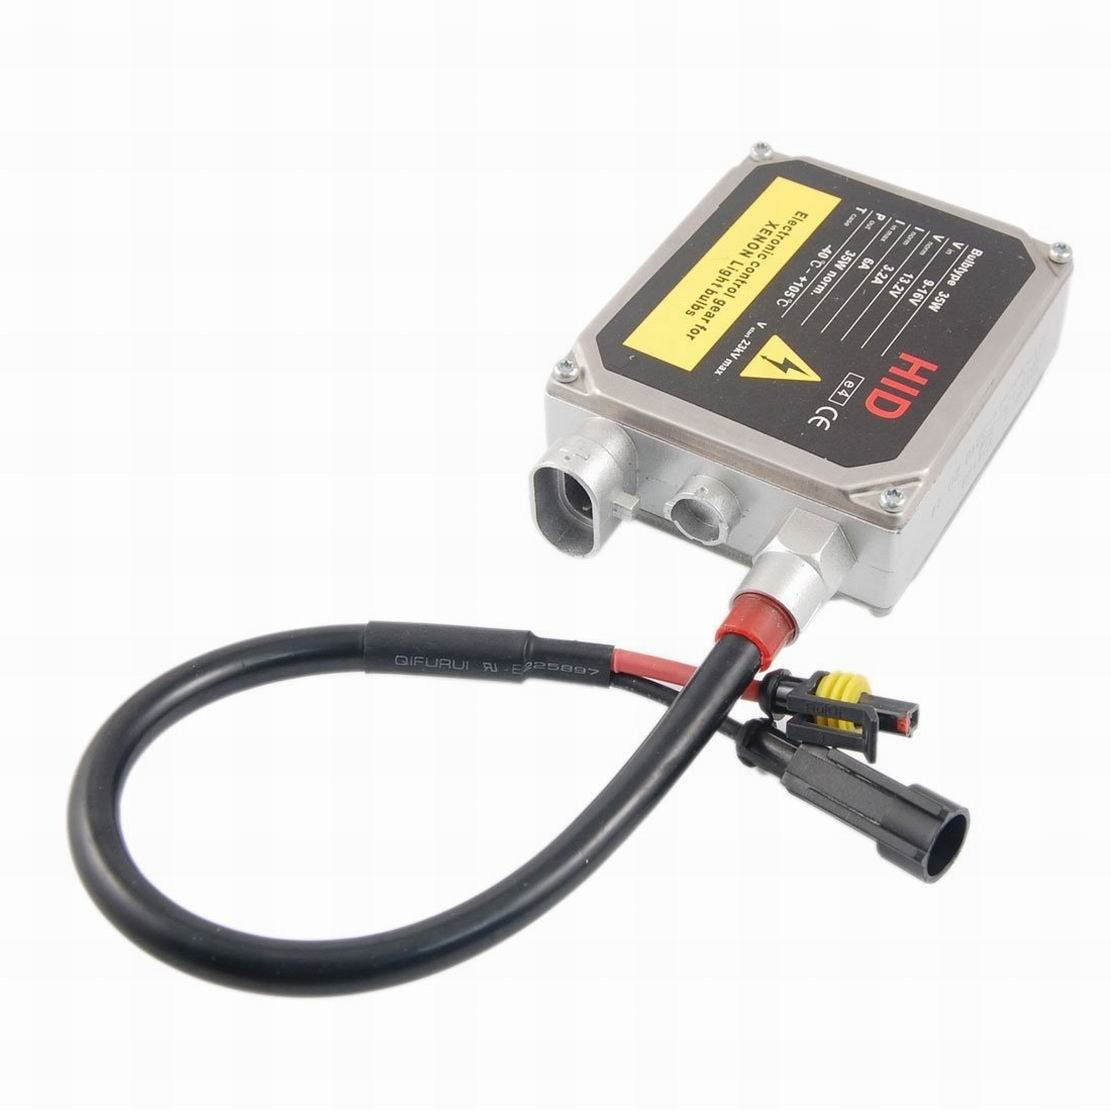 Ucland 35W Electronic Control Gear Ballast for HID Xenon Light Bulbs